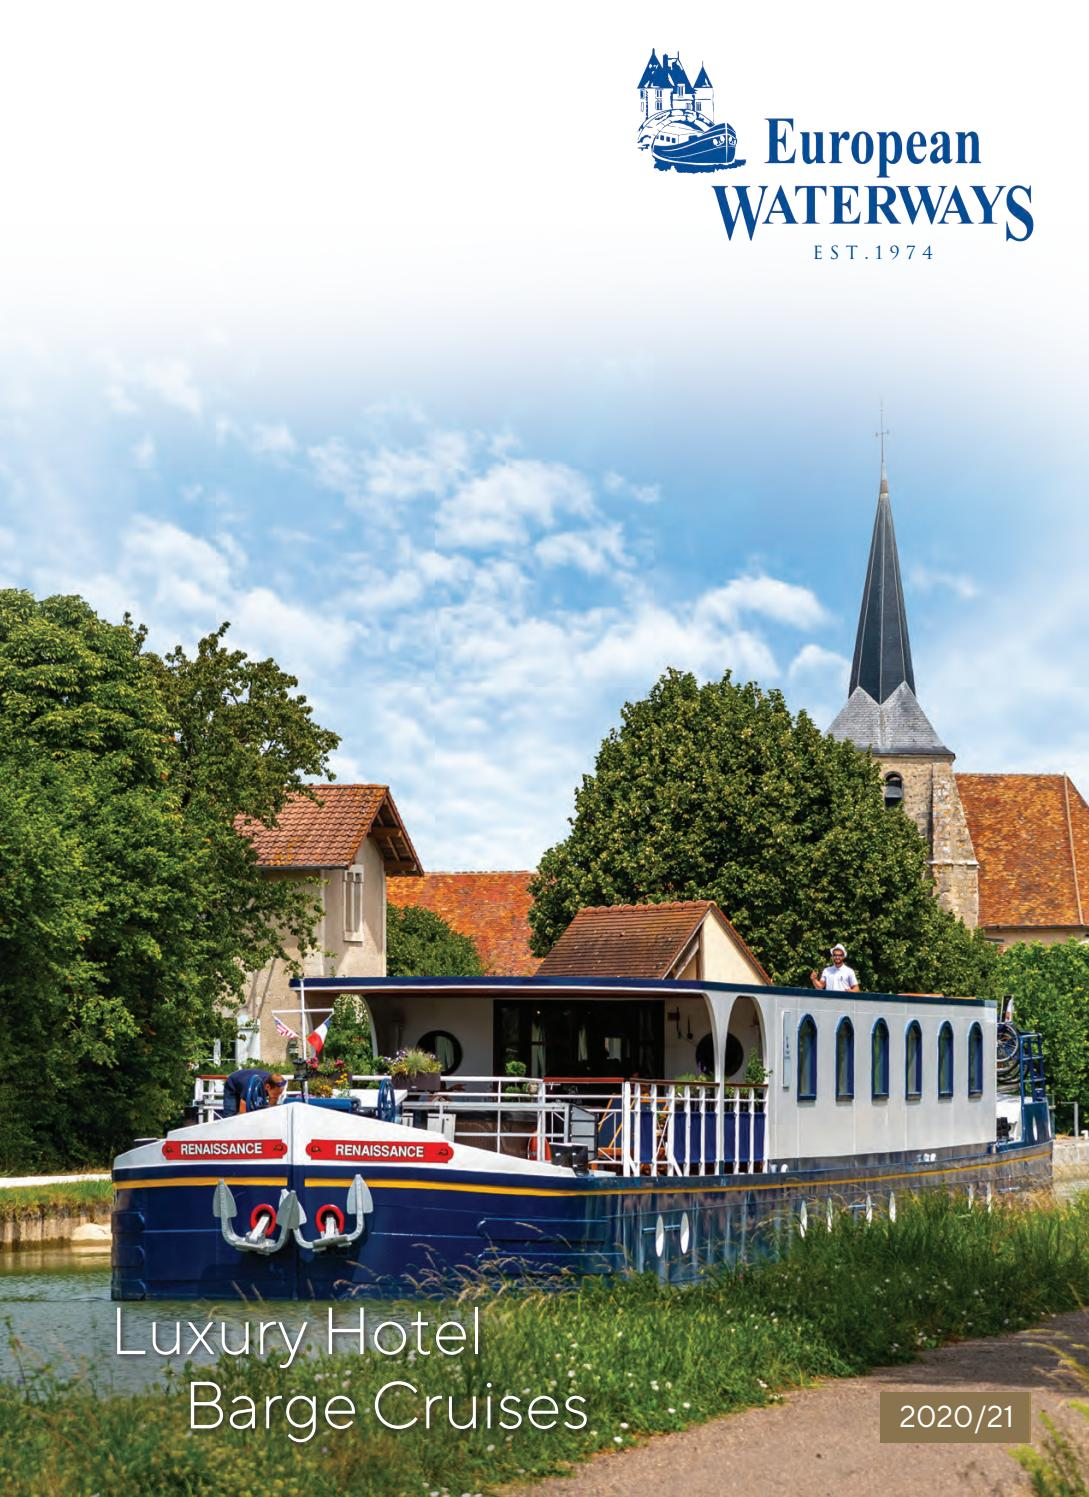 Maison Et Spa Coulommiers european waterways 2019/20 brochure - agentseuropean